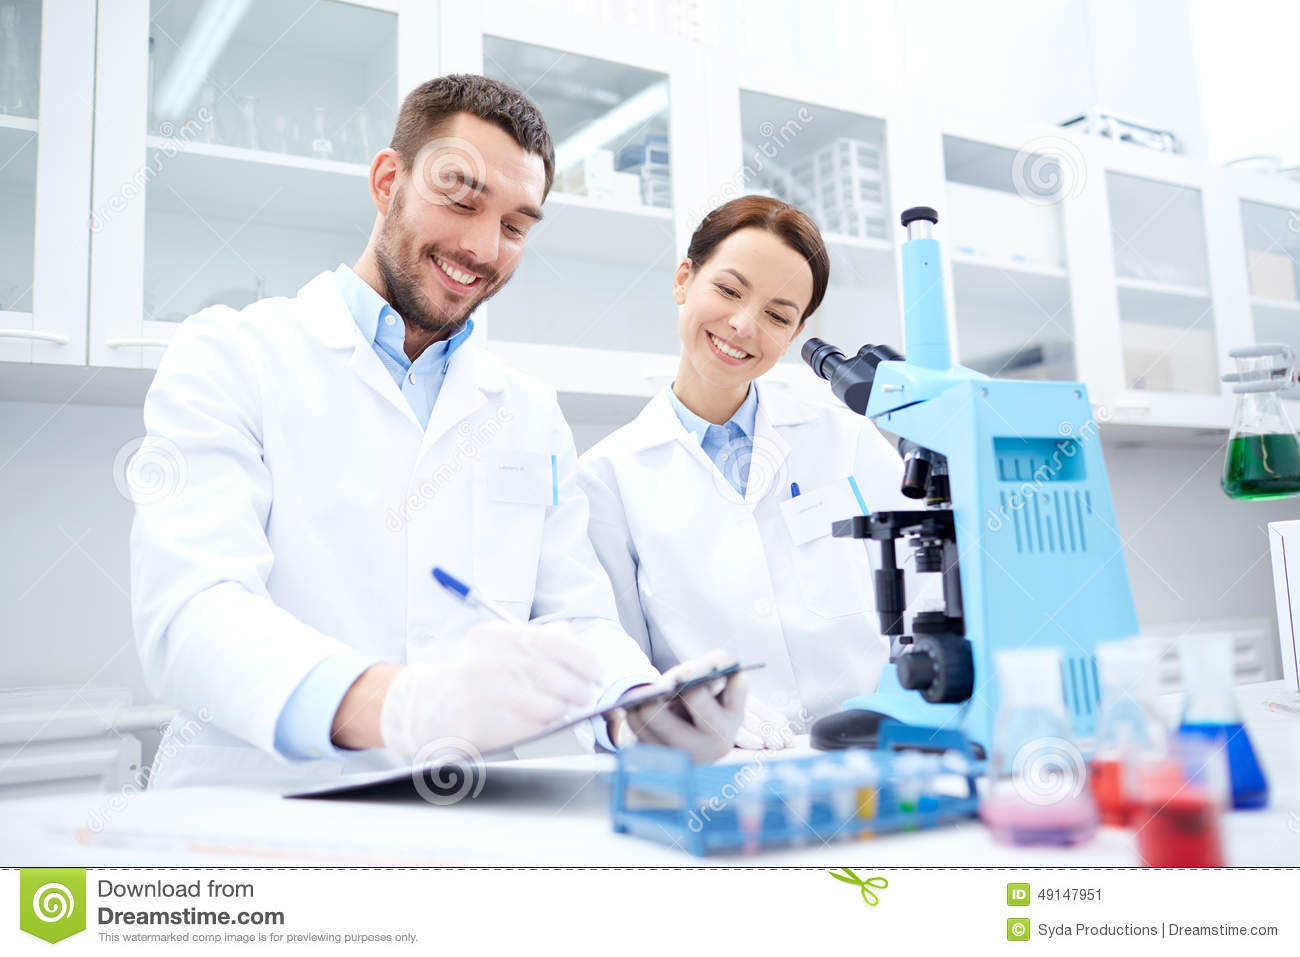 lab scientists microscope science biology research chemistry clipboard technology industry young making chemists preview